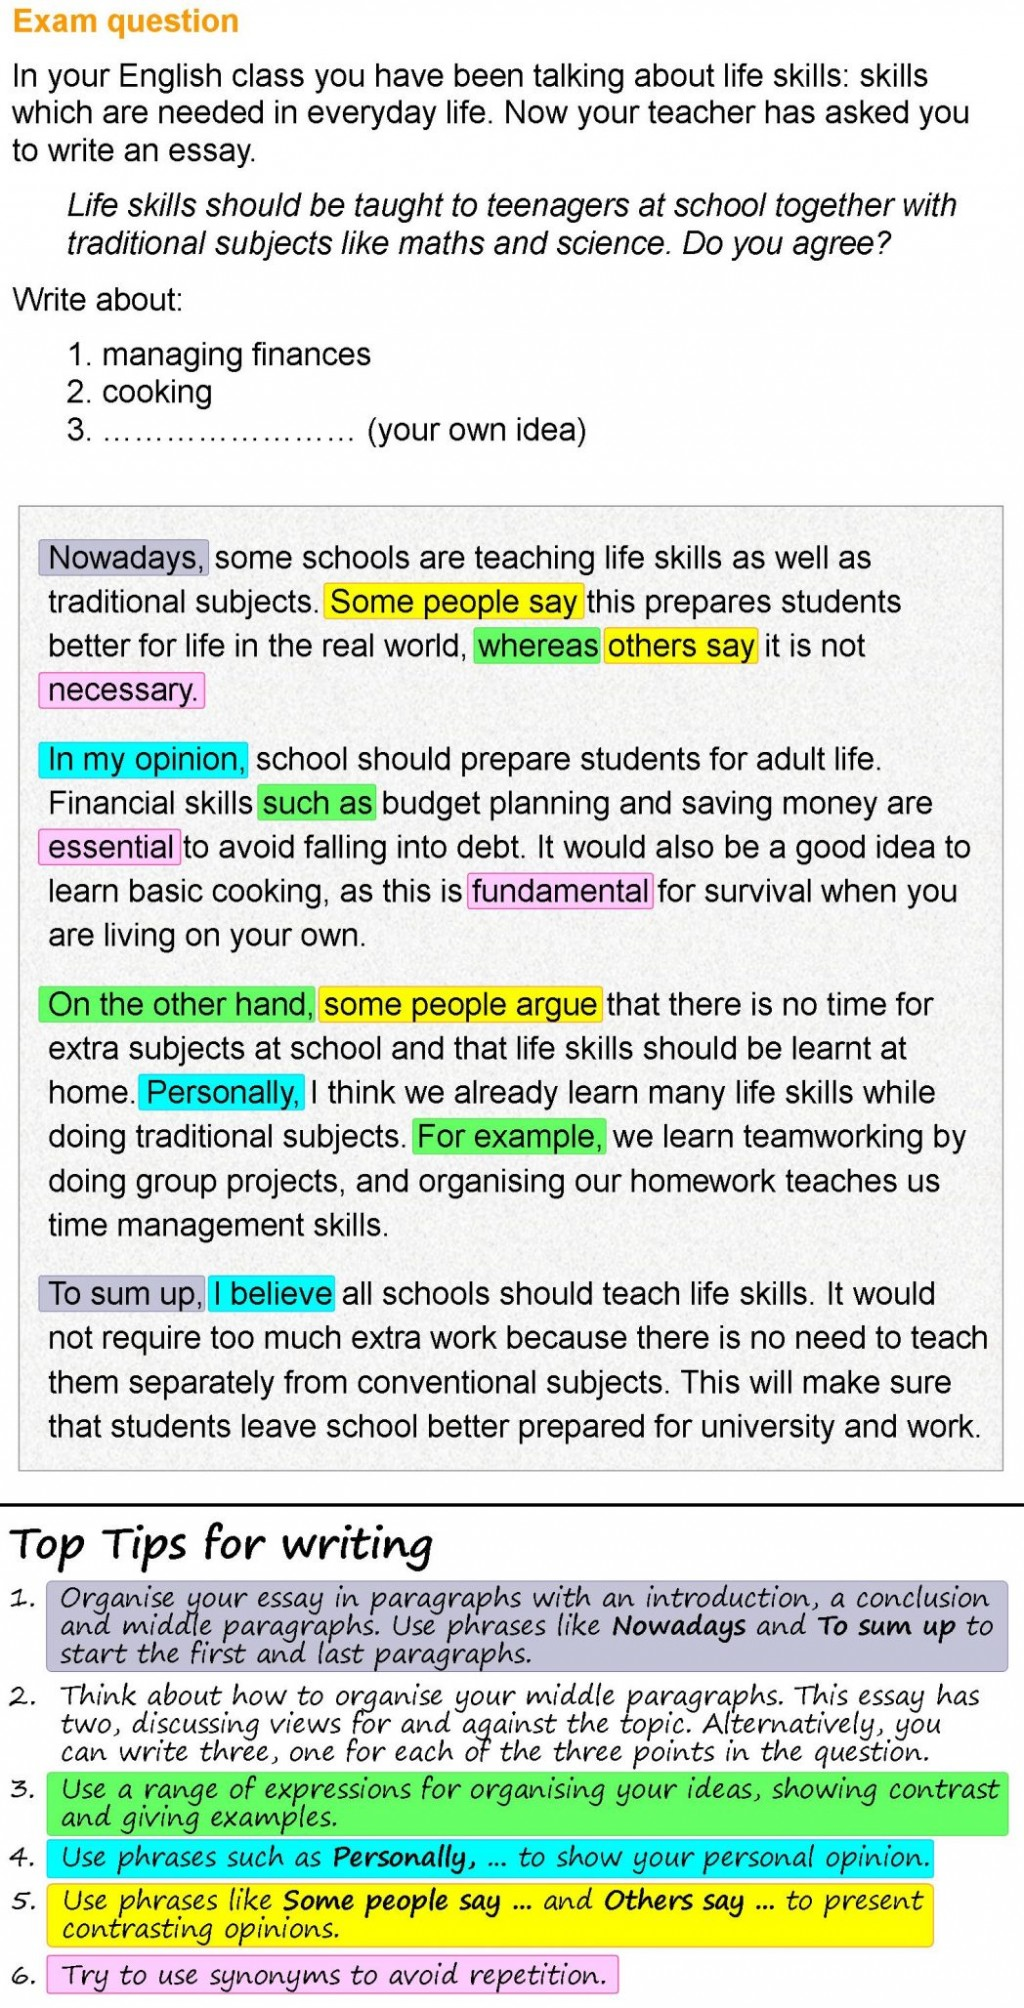 002 Why School Should Start Later Essay Example Skills Life Sex Education Taught In Schools Es Public Reasons Not Argumentative Essays Students Excellent The Morning Persuasive Large